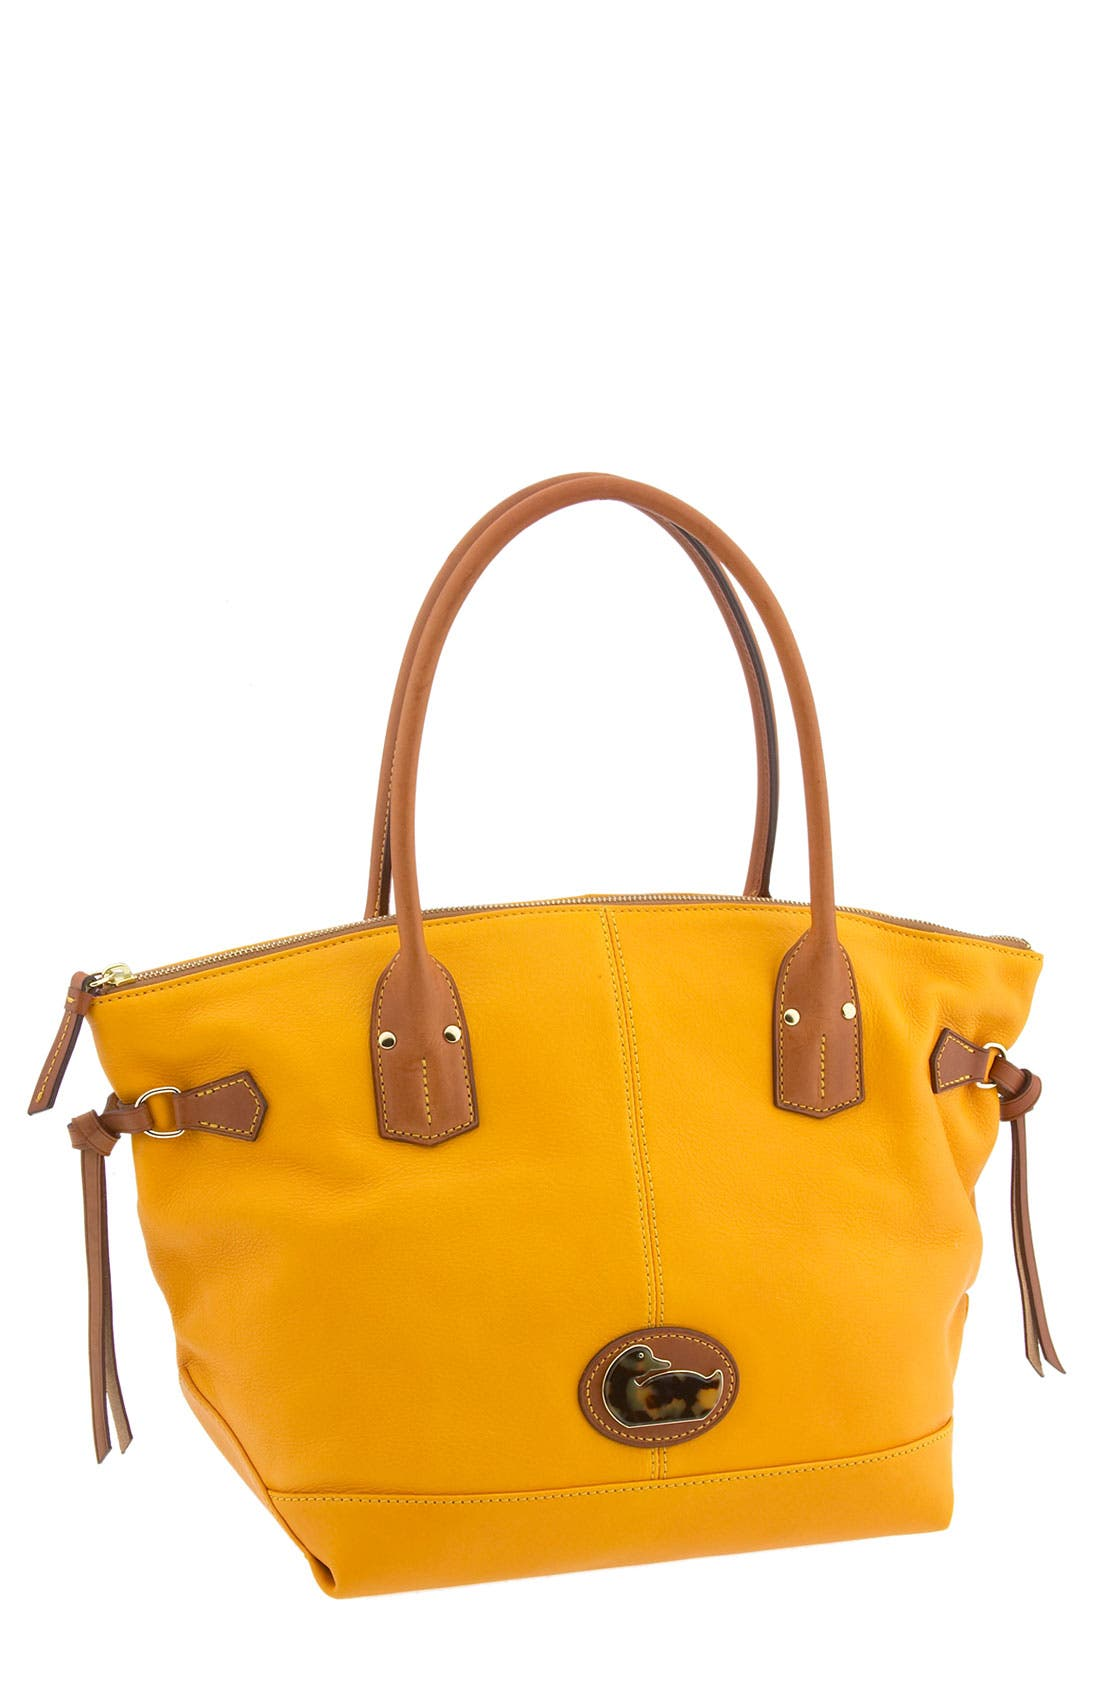 Alternate Image 1 Selected - Dooney & Bourke 'Champosa - Medium' Leather Tote